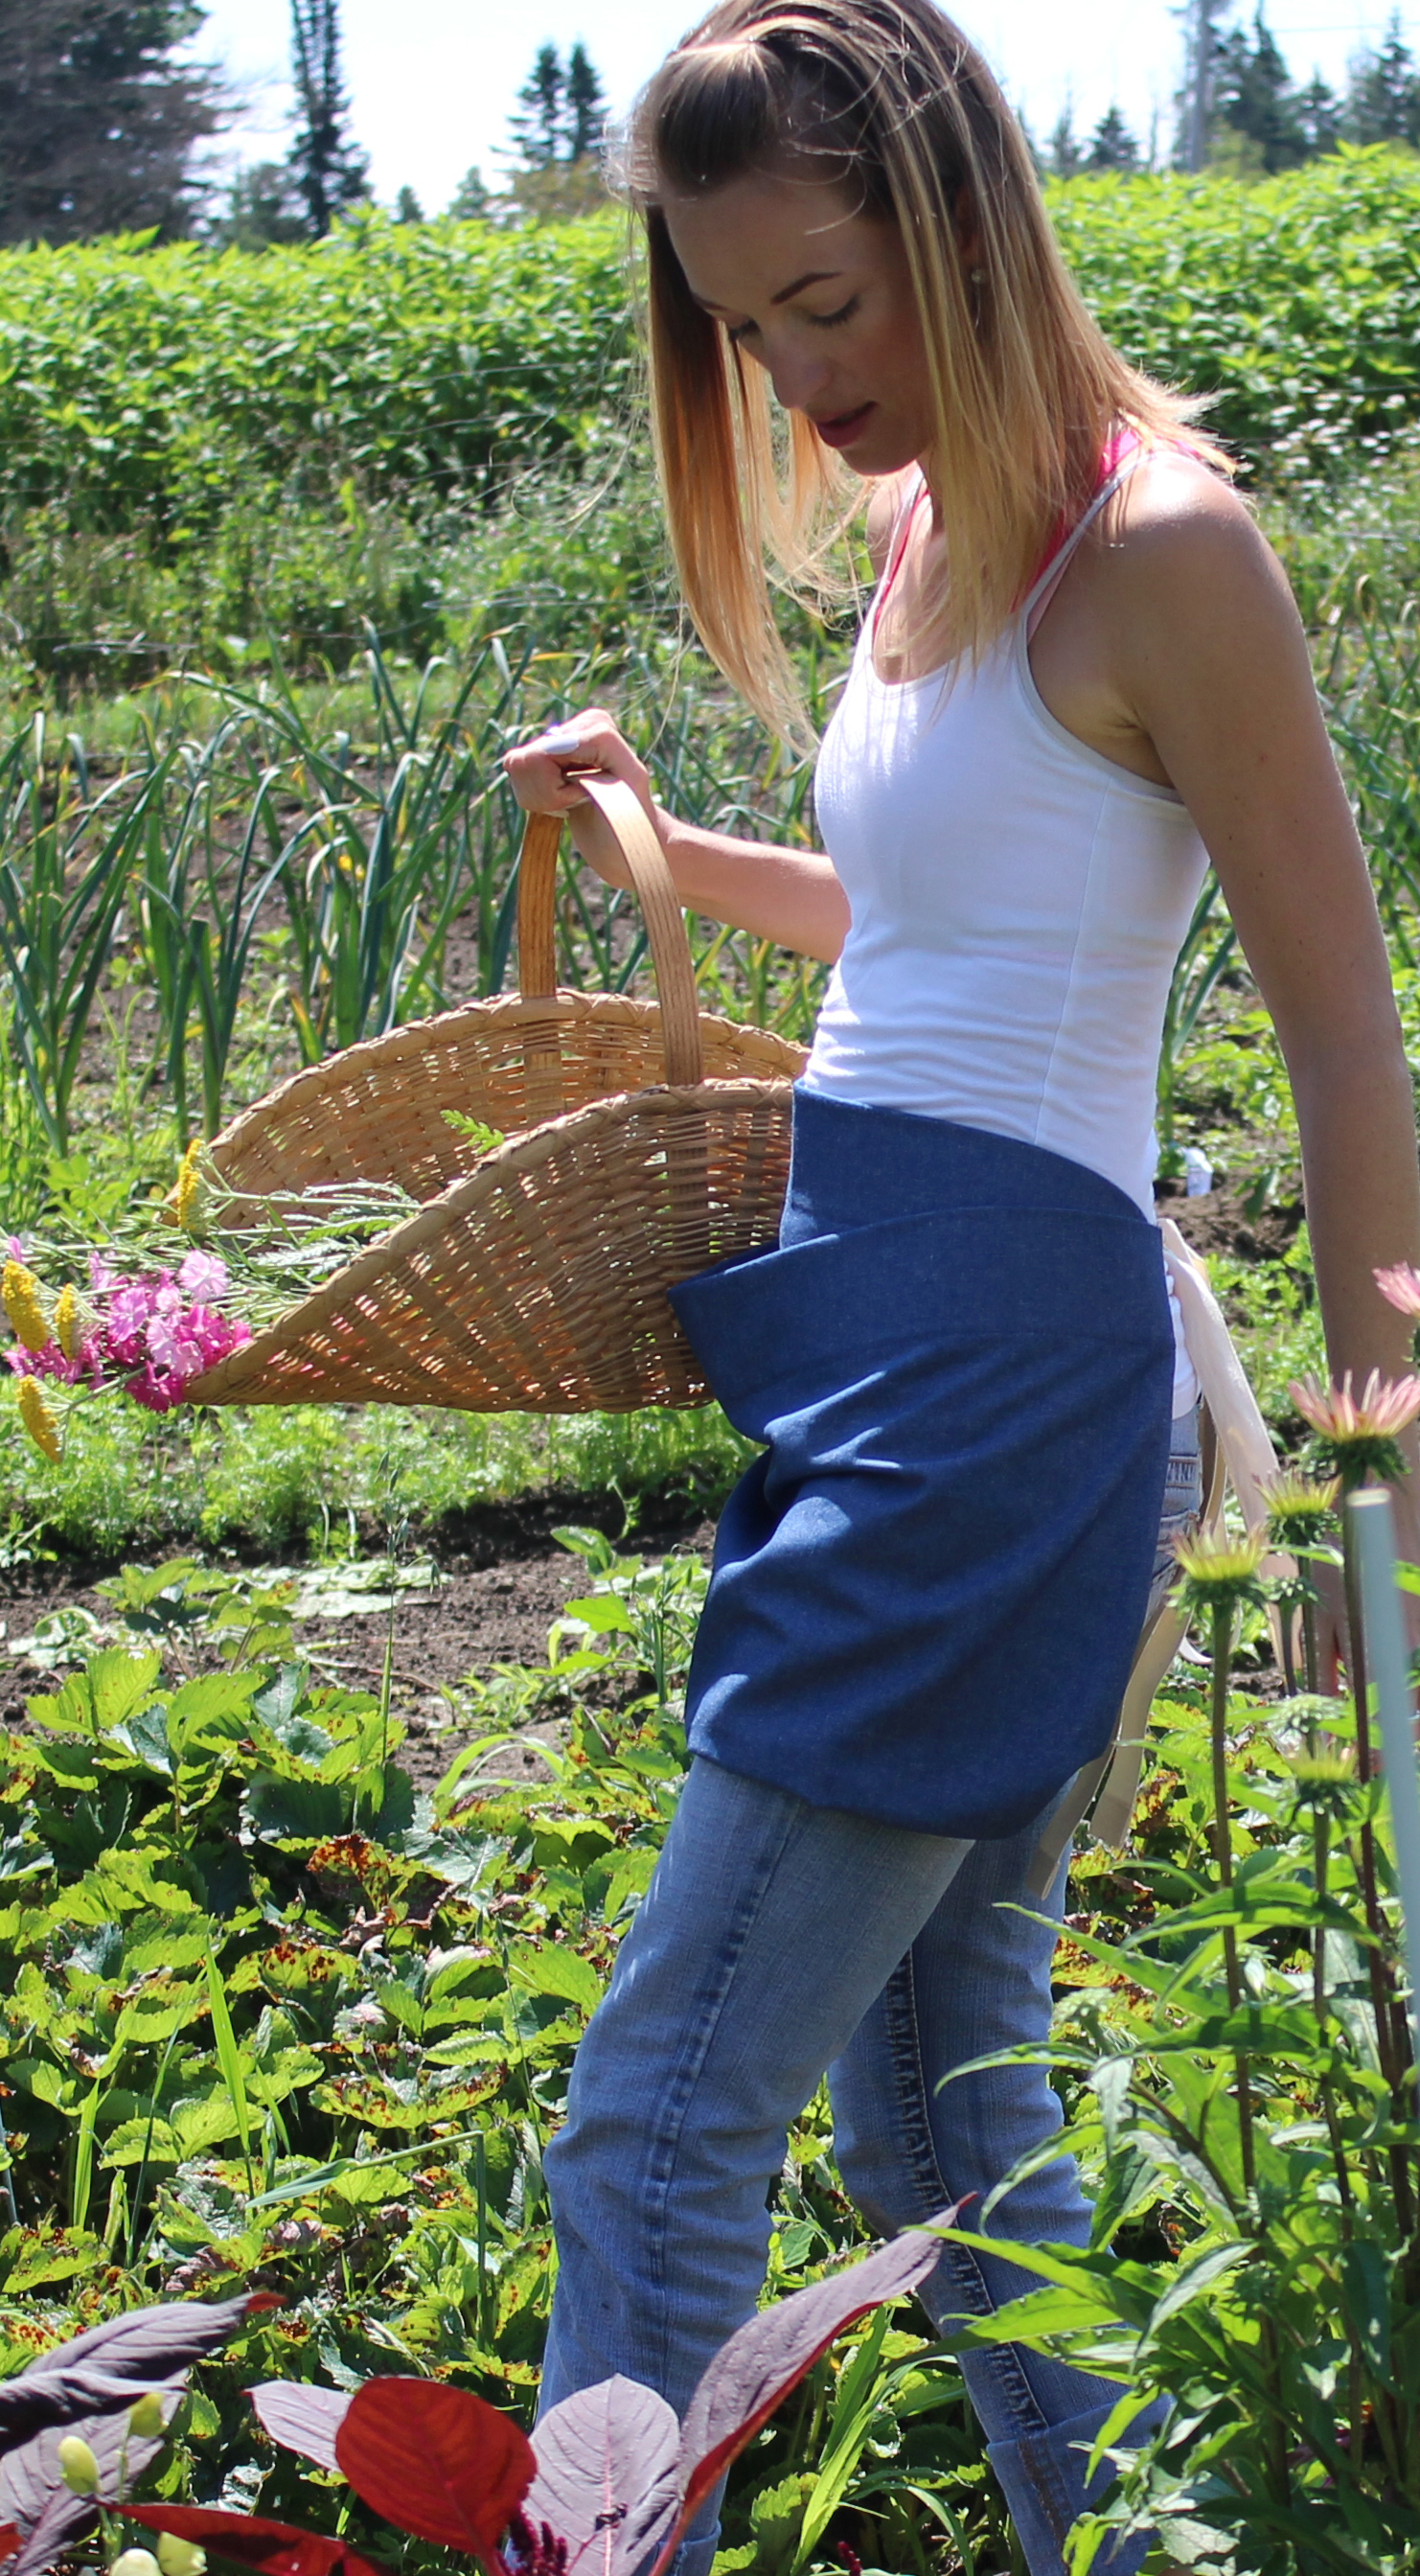 A New Addition to the Gathering Aprons, The Pouch Apron